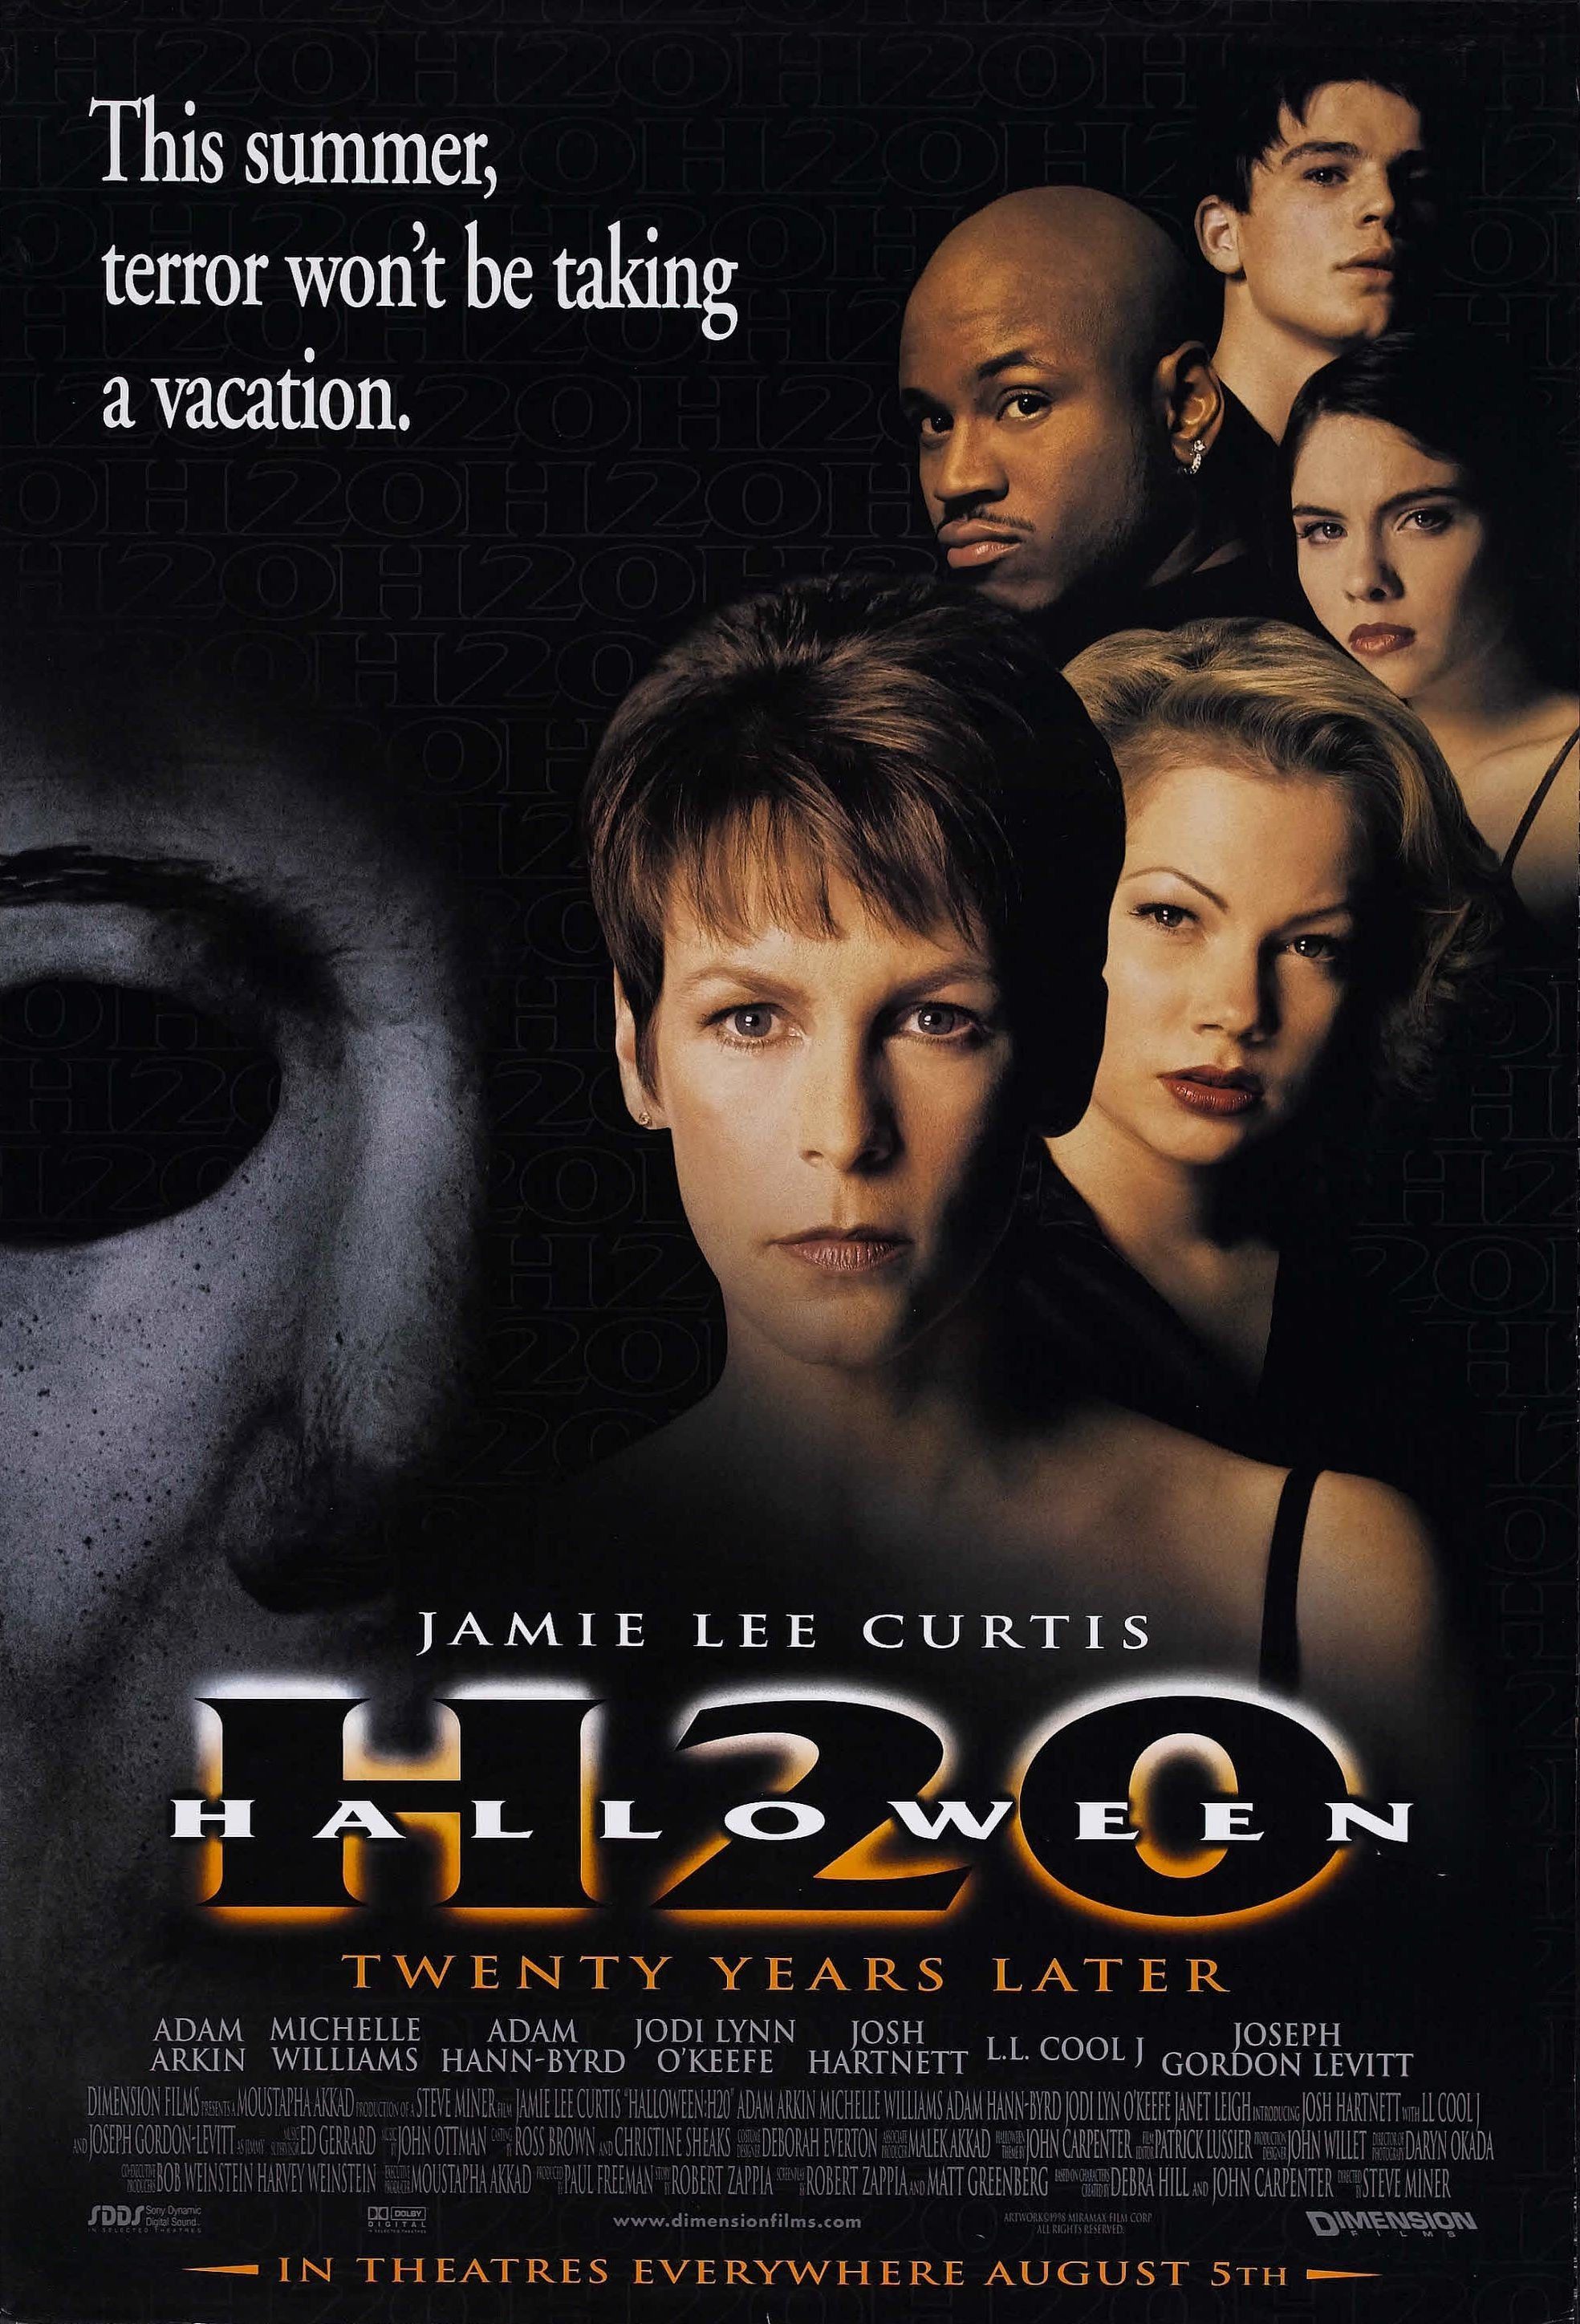 Halloween 2007 Hanna R Hall.Halloween H20 20 Years Later 1998 Imdb